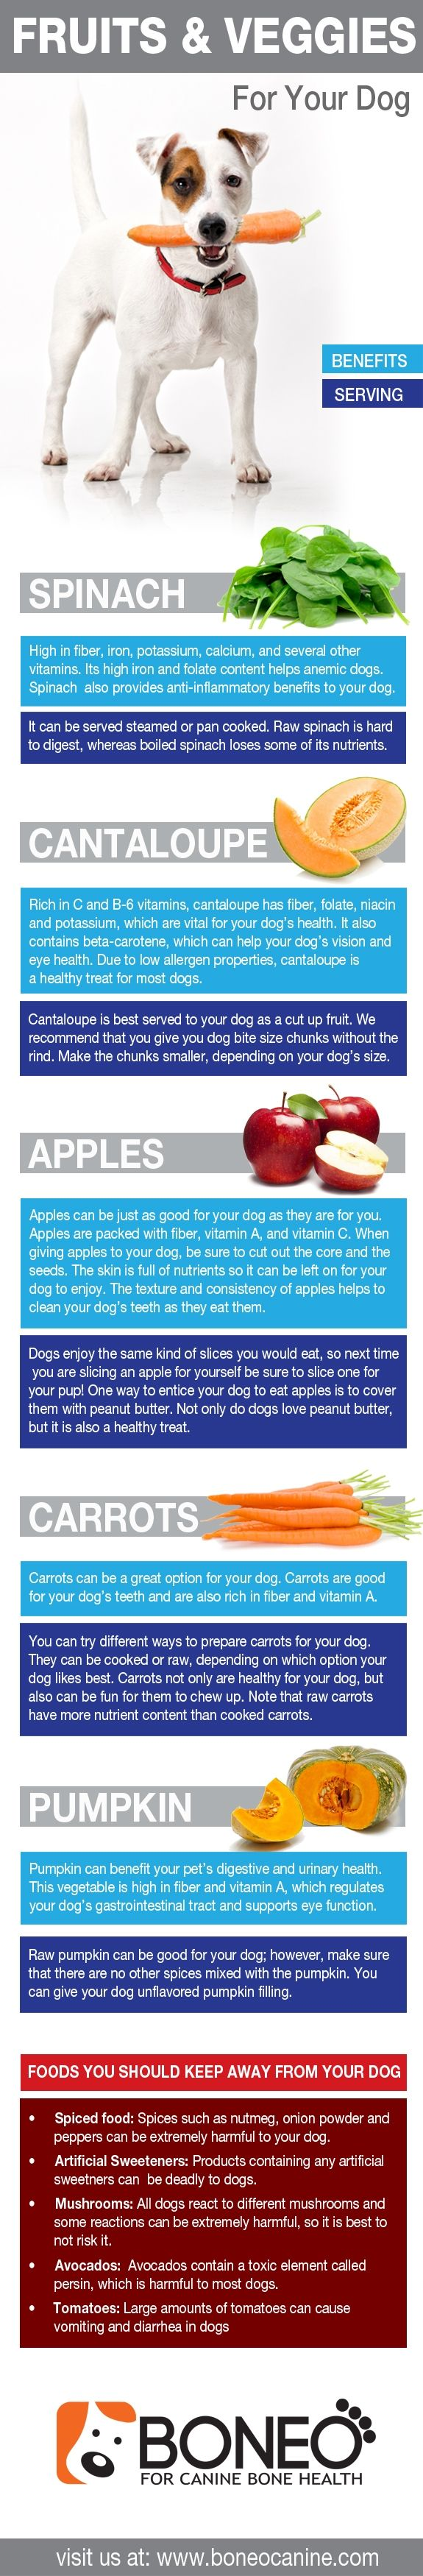 Dog infographic about healthy fruits and vegetables to give to your dog. |  Dog infographic, Dog care, Pet hacks